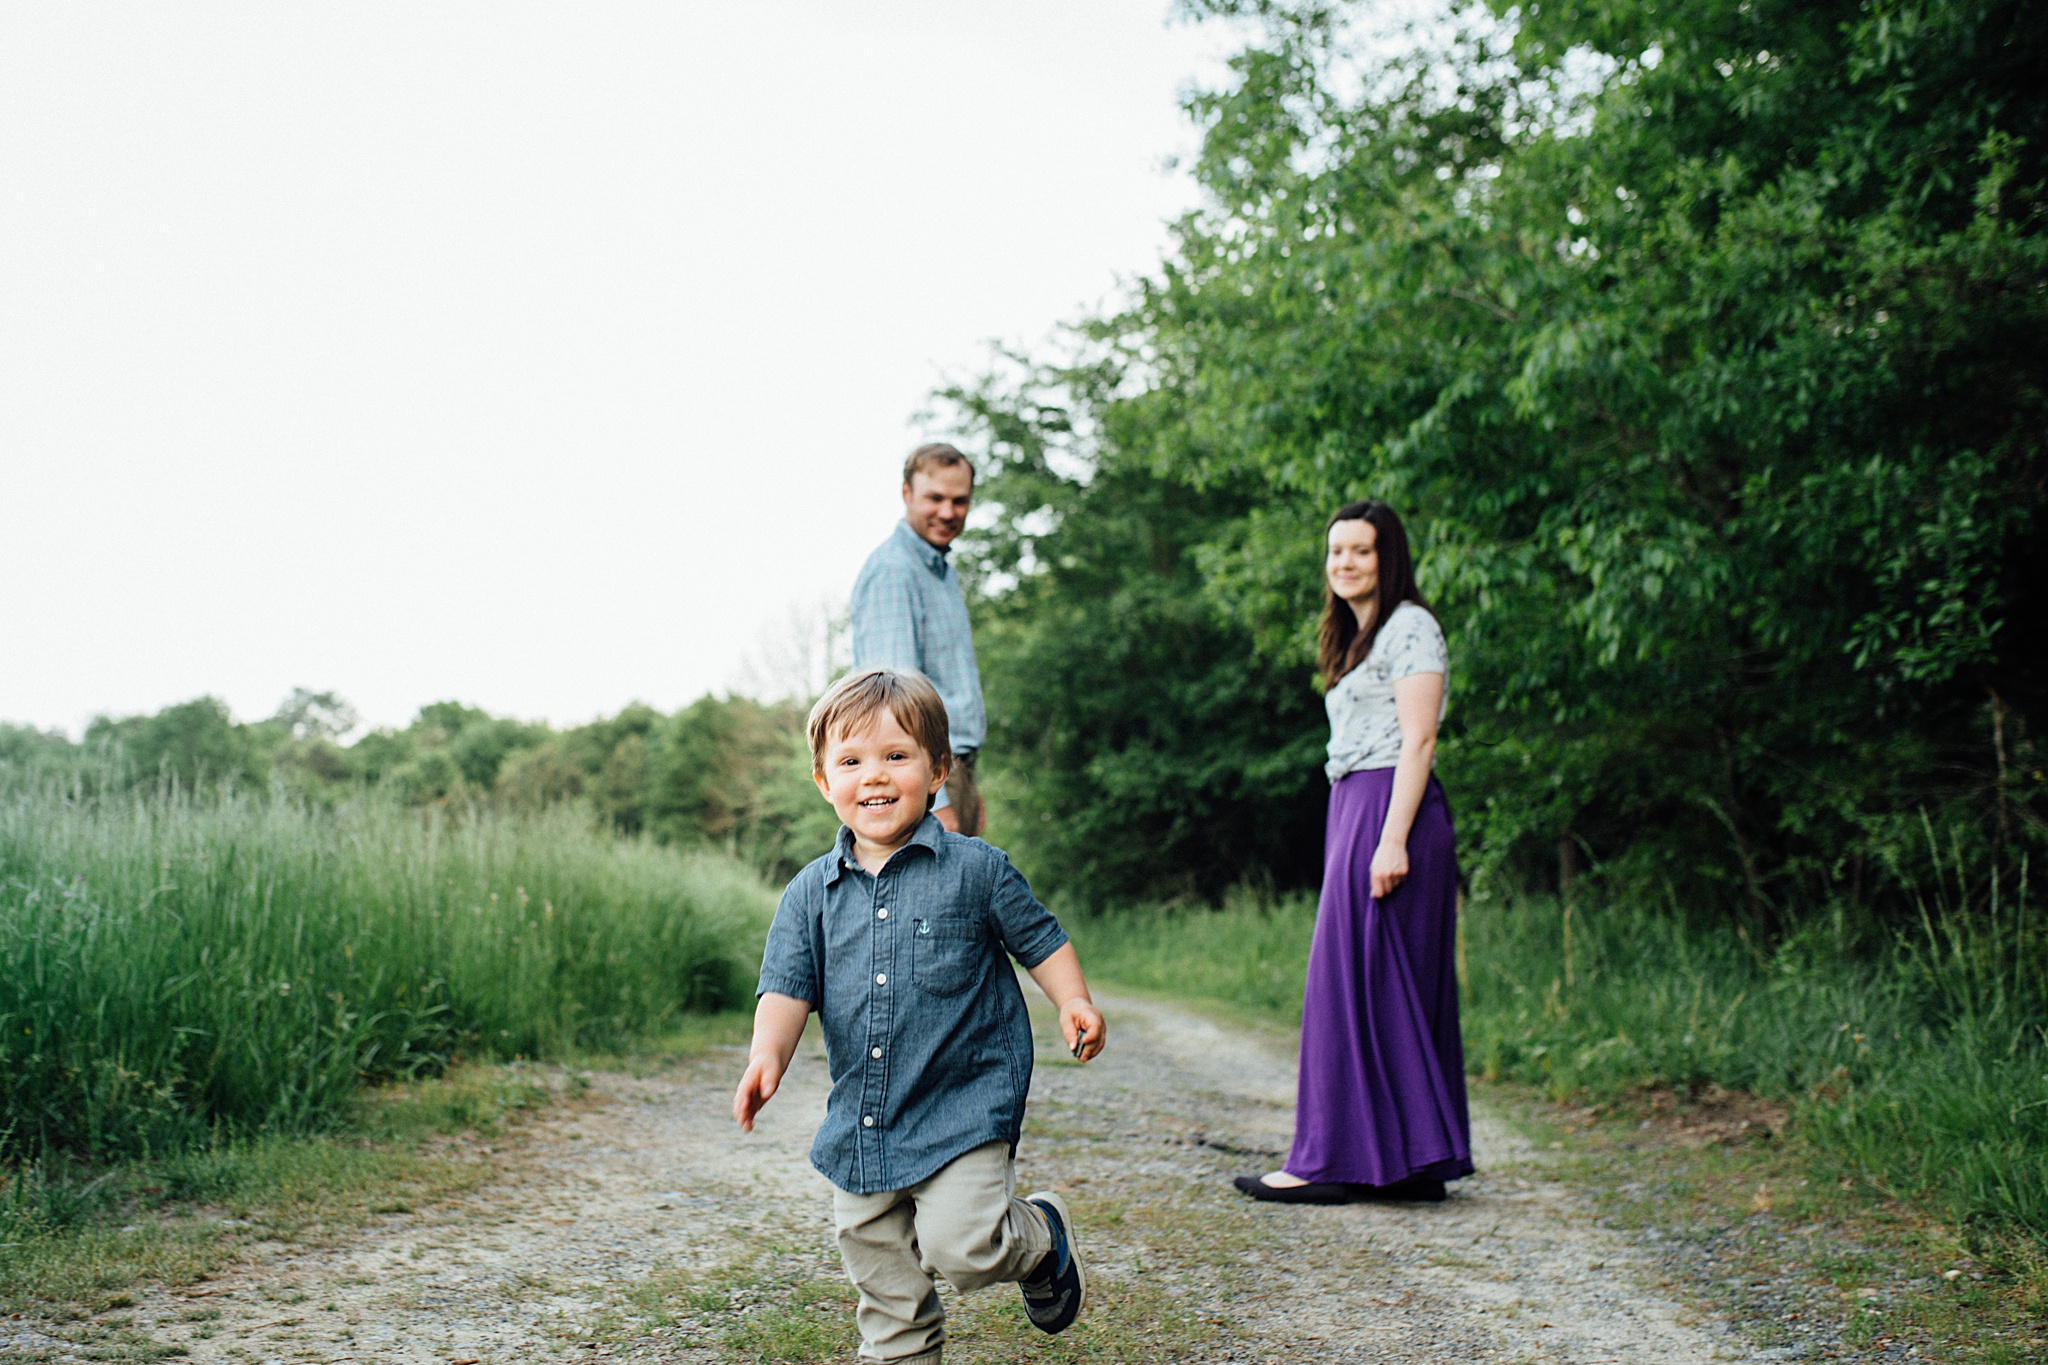 Family portrait photographer woodstock-6.jpg